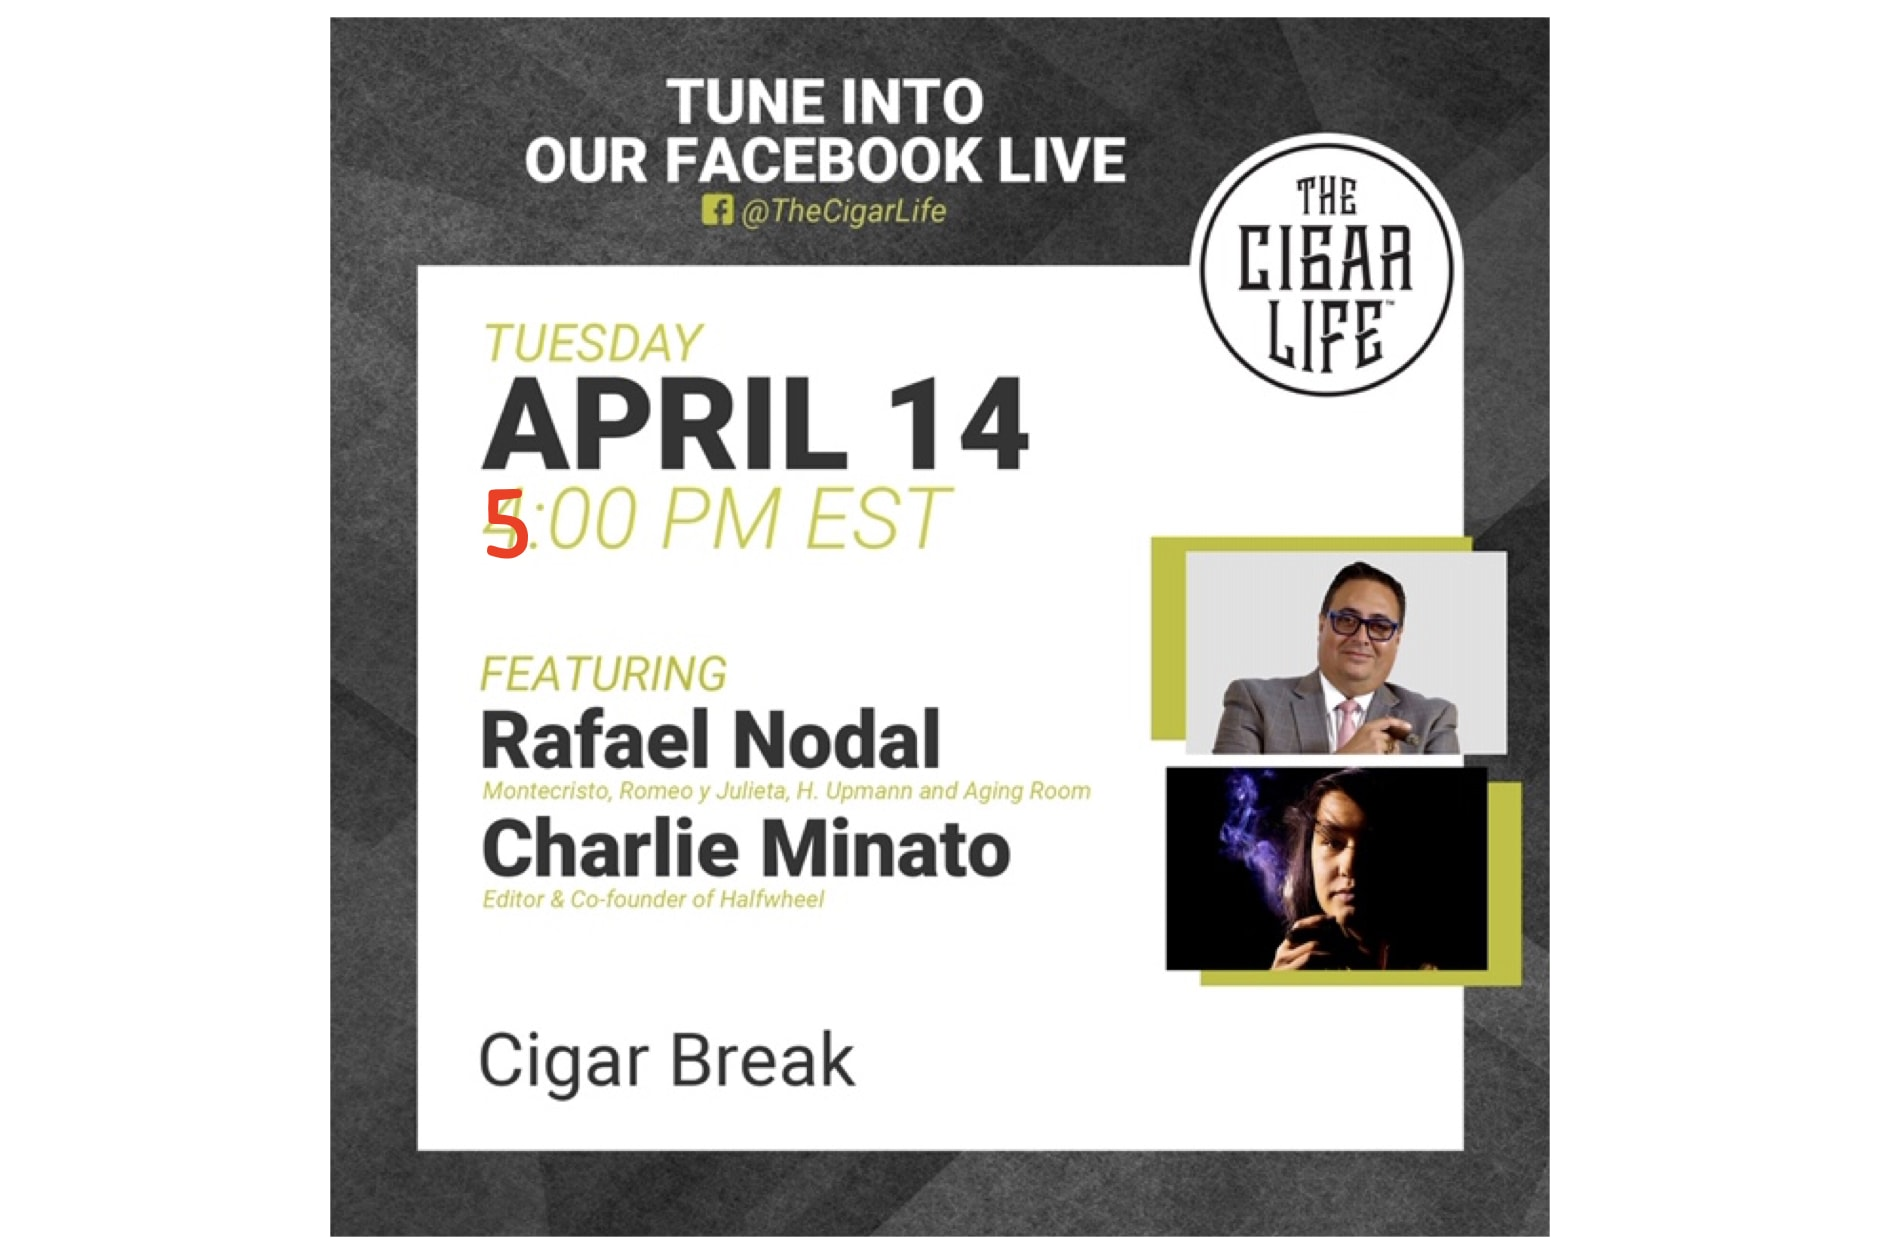 Watch: Charlie Minato on The Cigar Life (5:00 P.M. EST) Featured Image